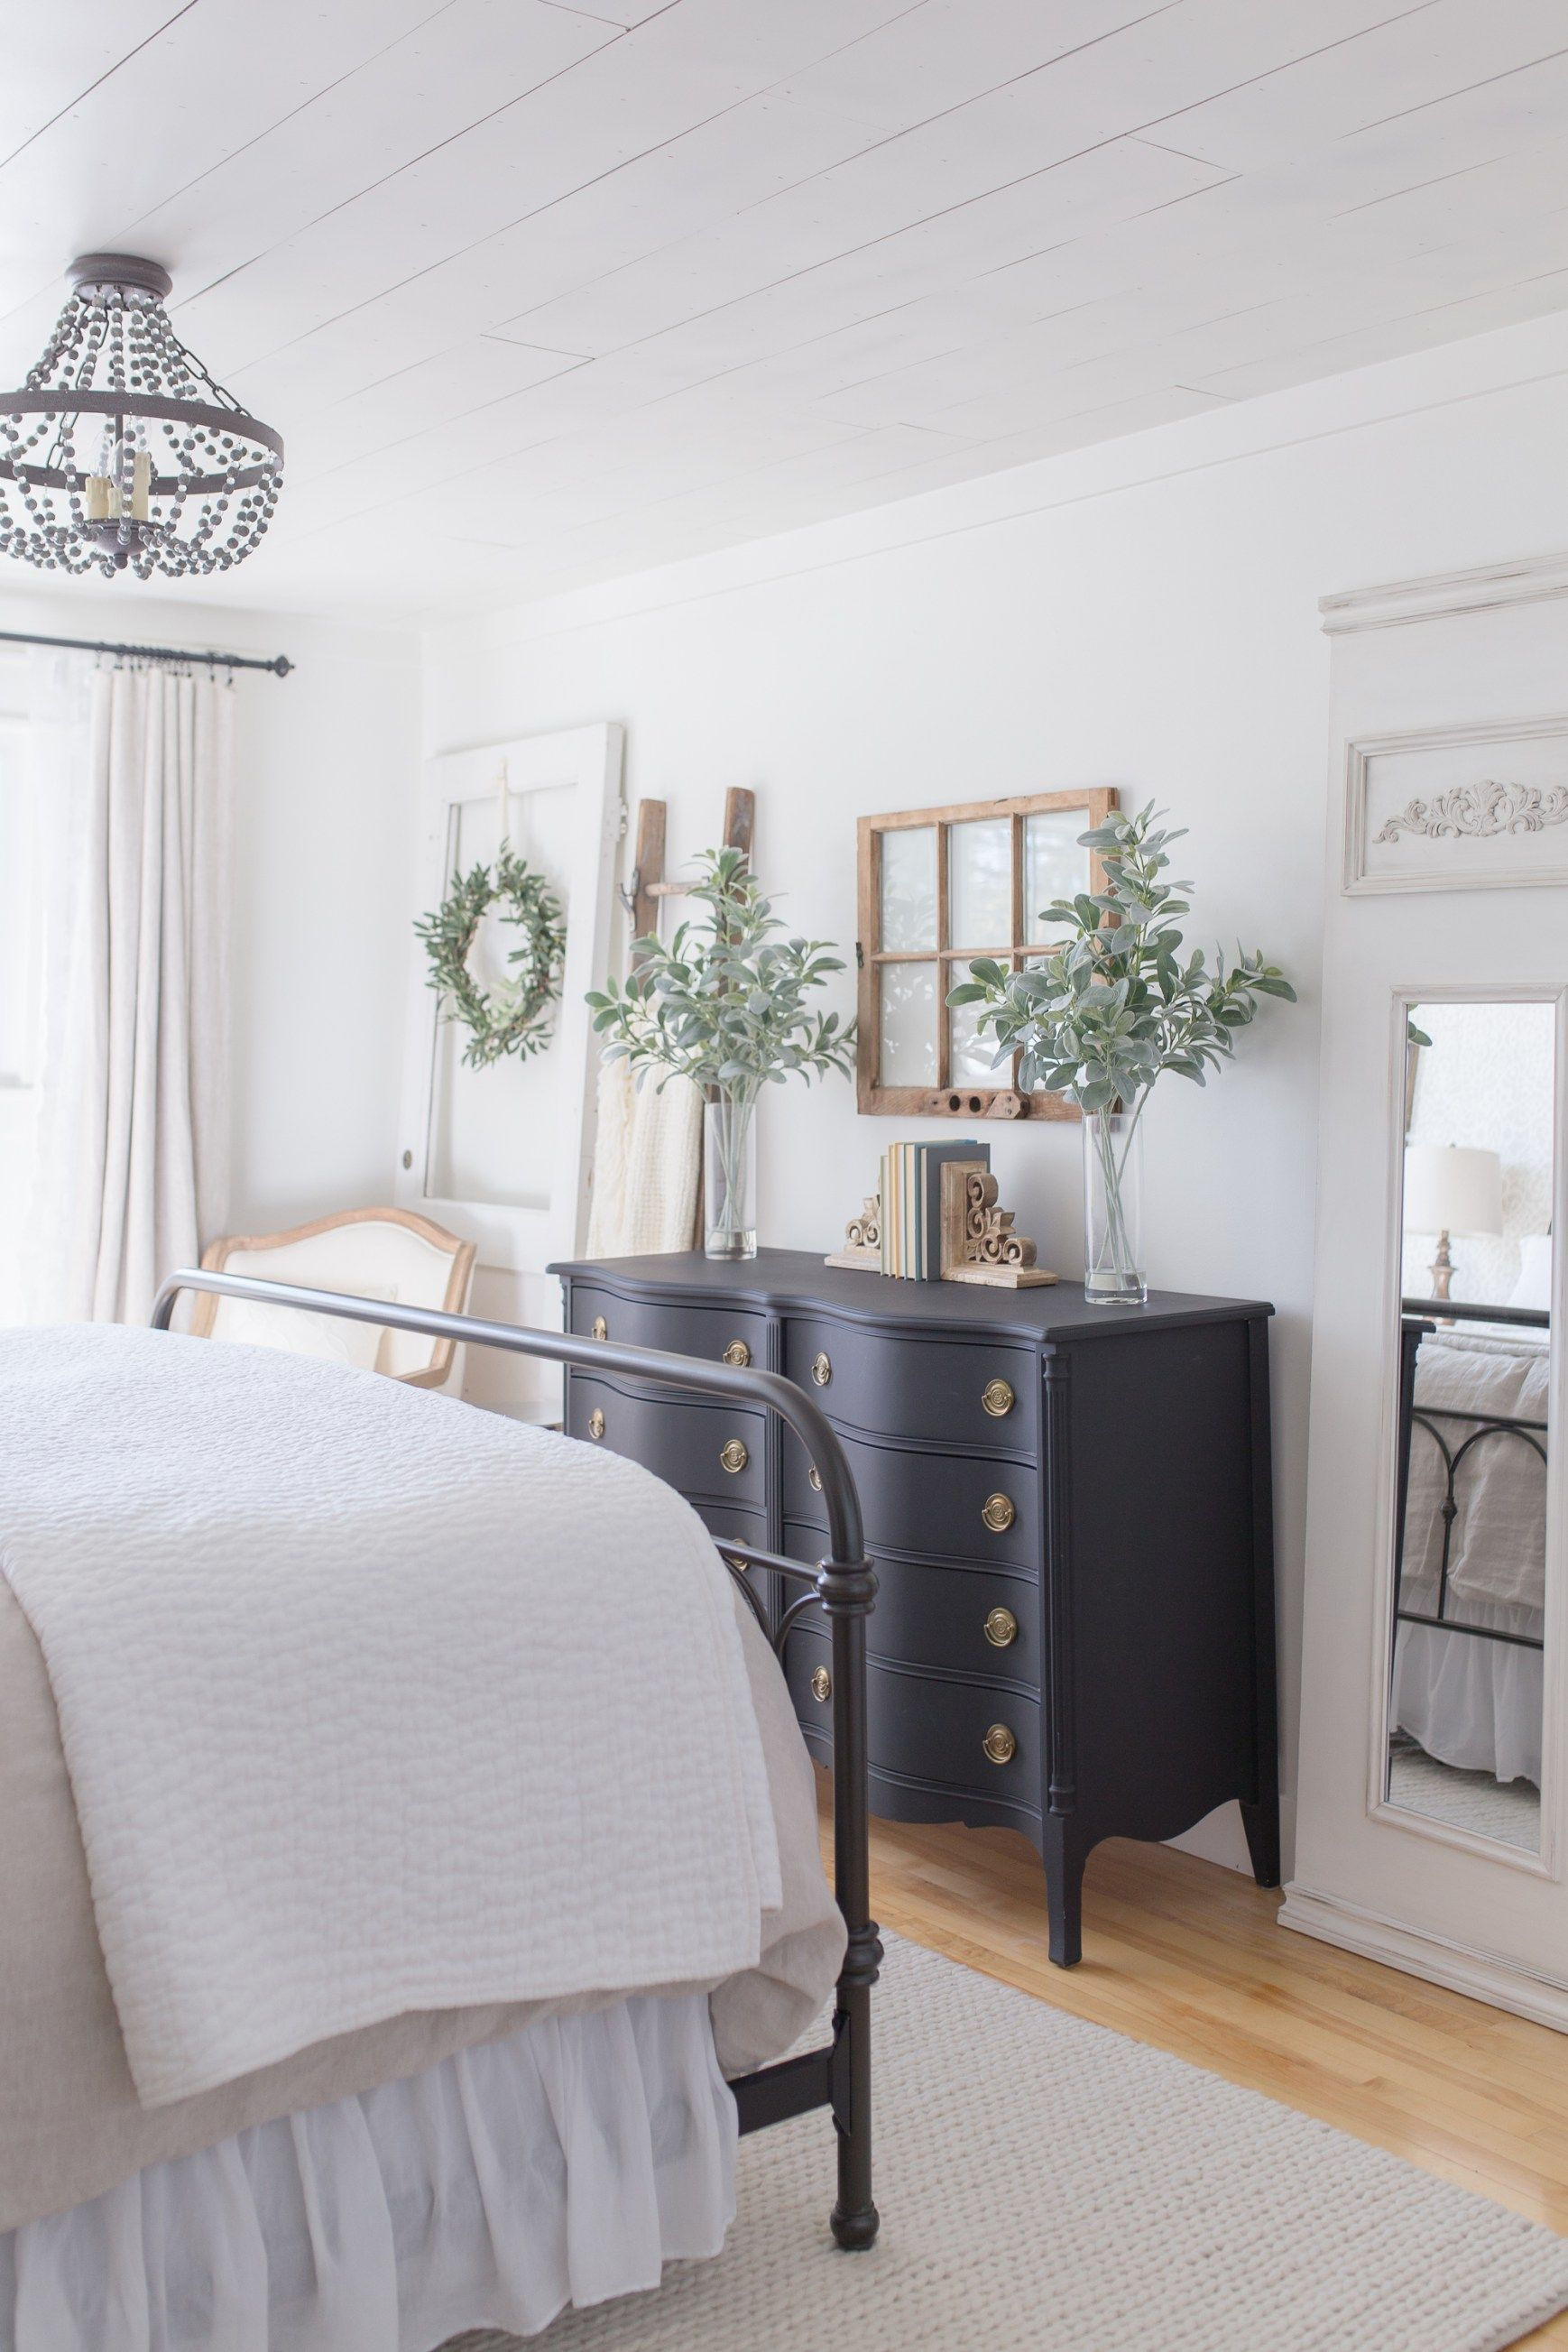 Taking You On A Tour Of Our Farmhouse Bedroom All Decorated For Spring Rich Textures And Fresh Flowers Help To Create Light Airy E That Still Feels